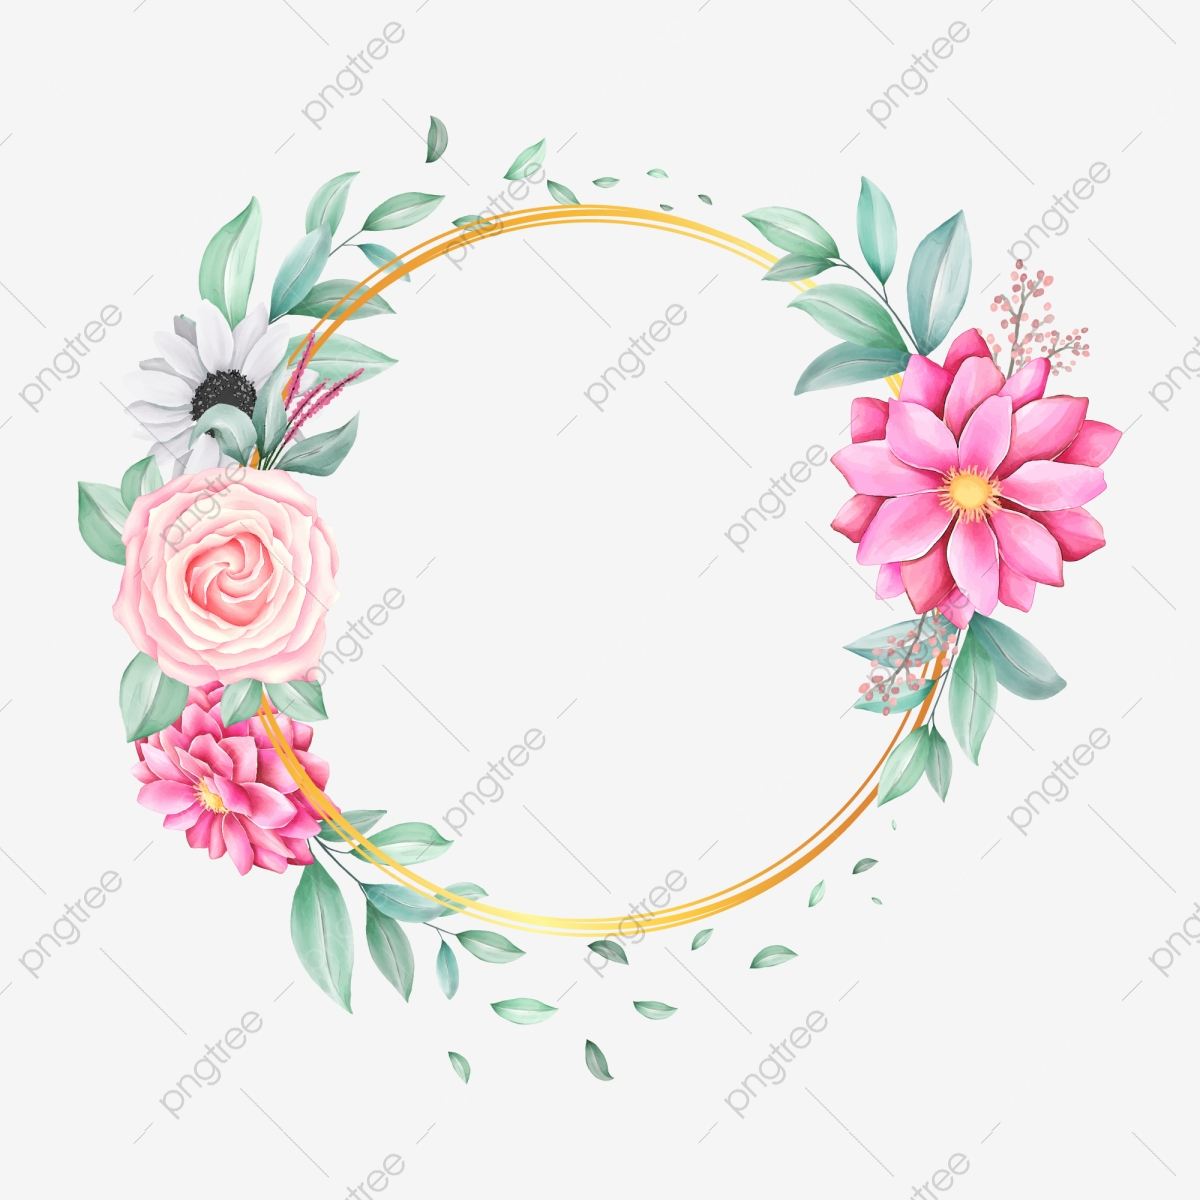 Cute Floral Frame With Golden Circle And Watercolor Flowers